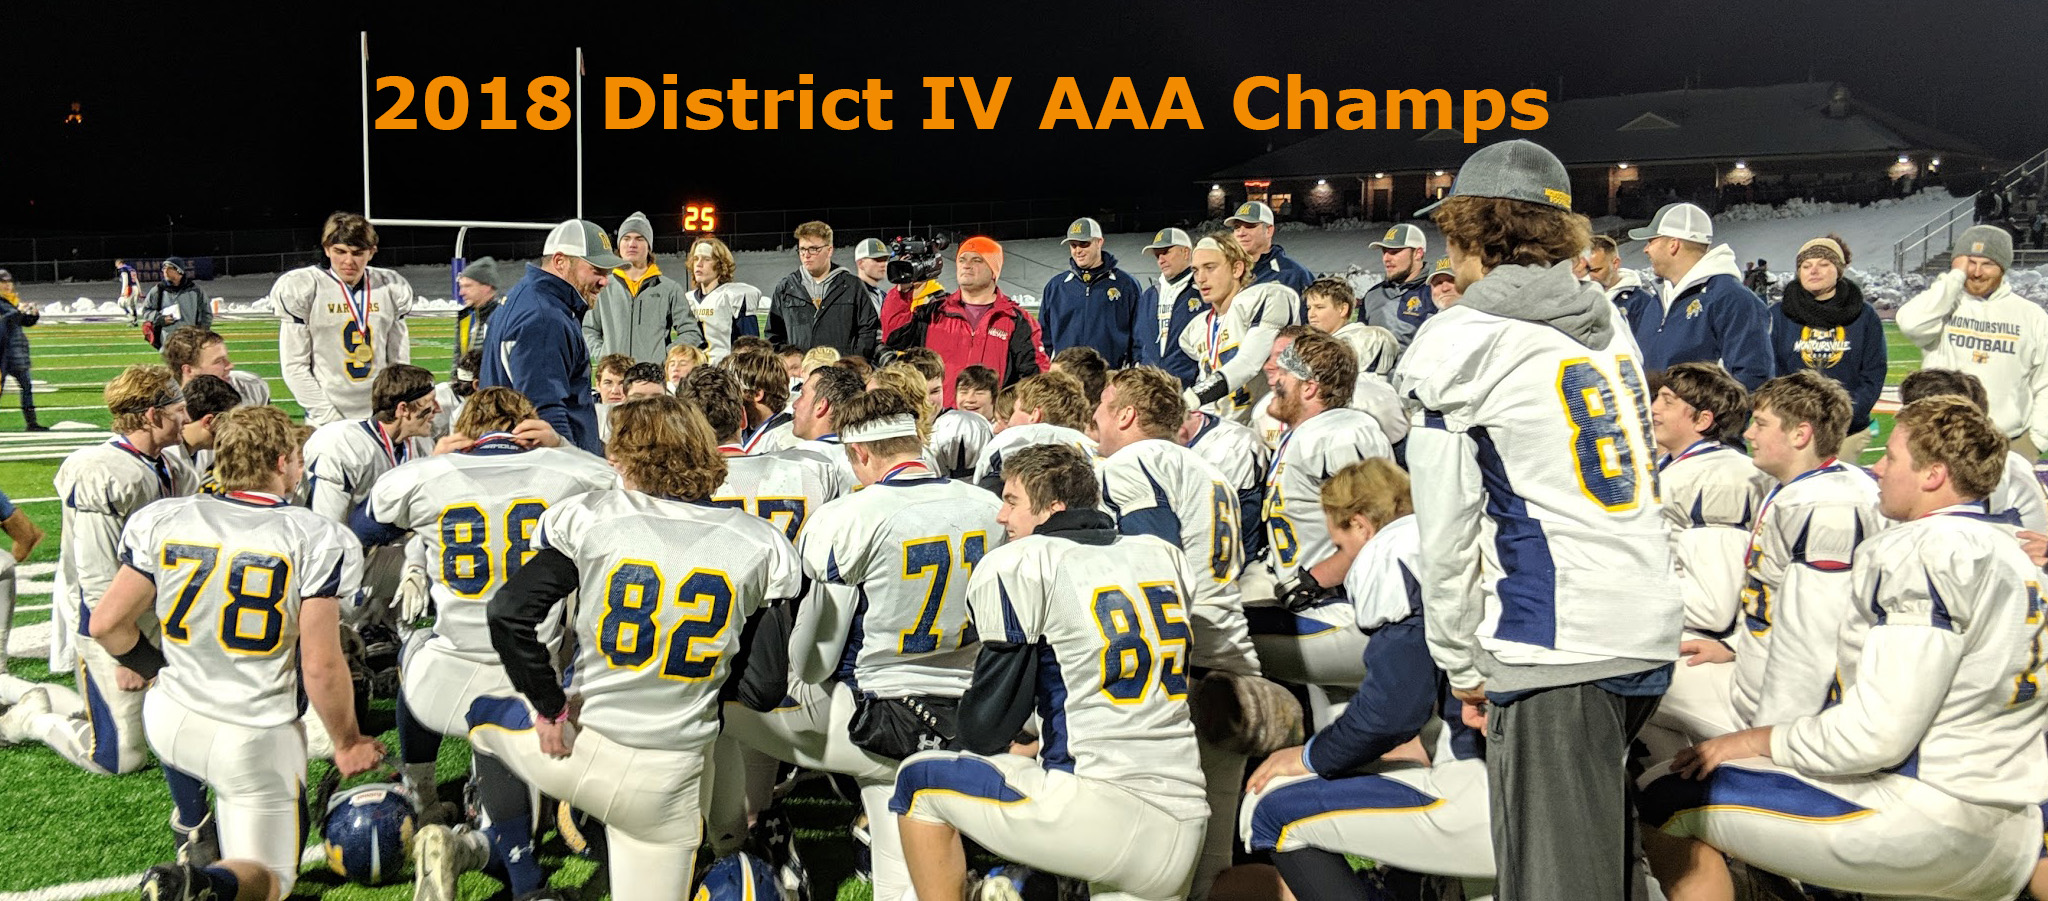 District IV AAA Football Champions